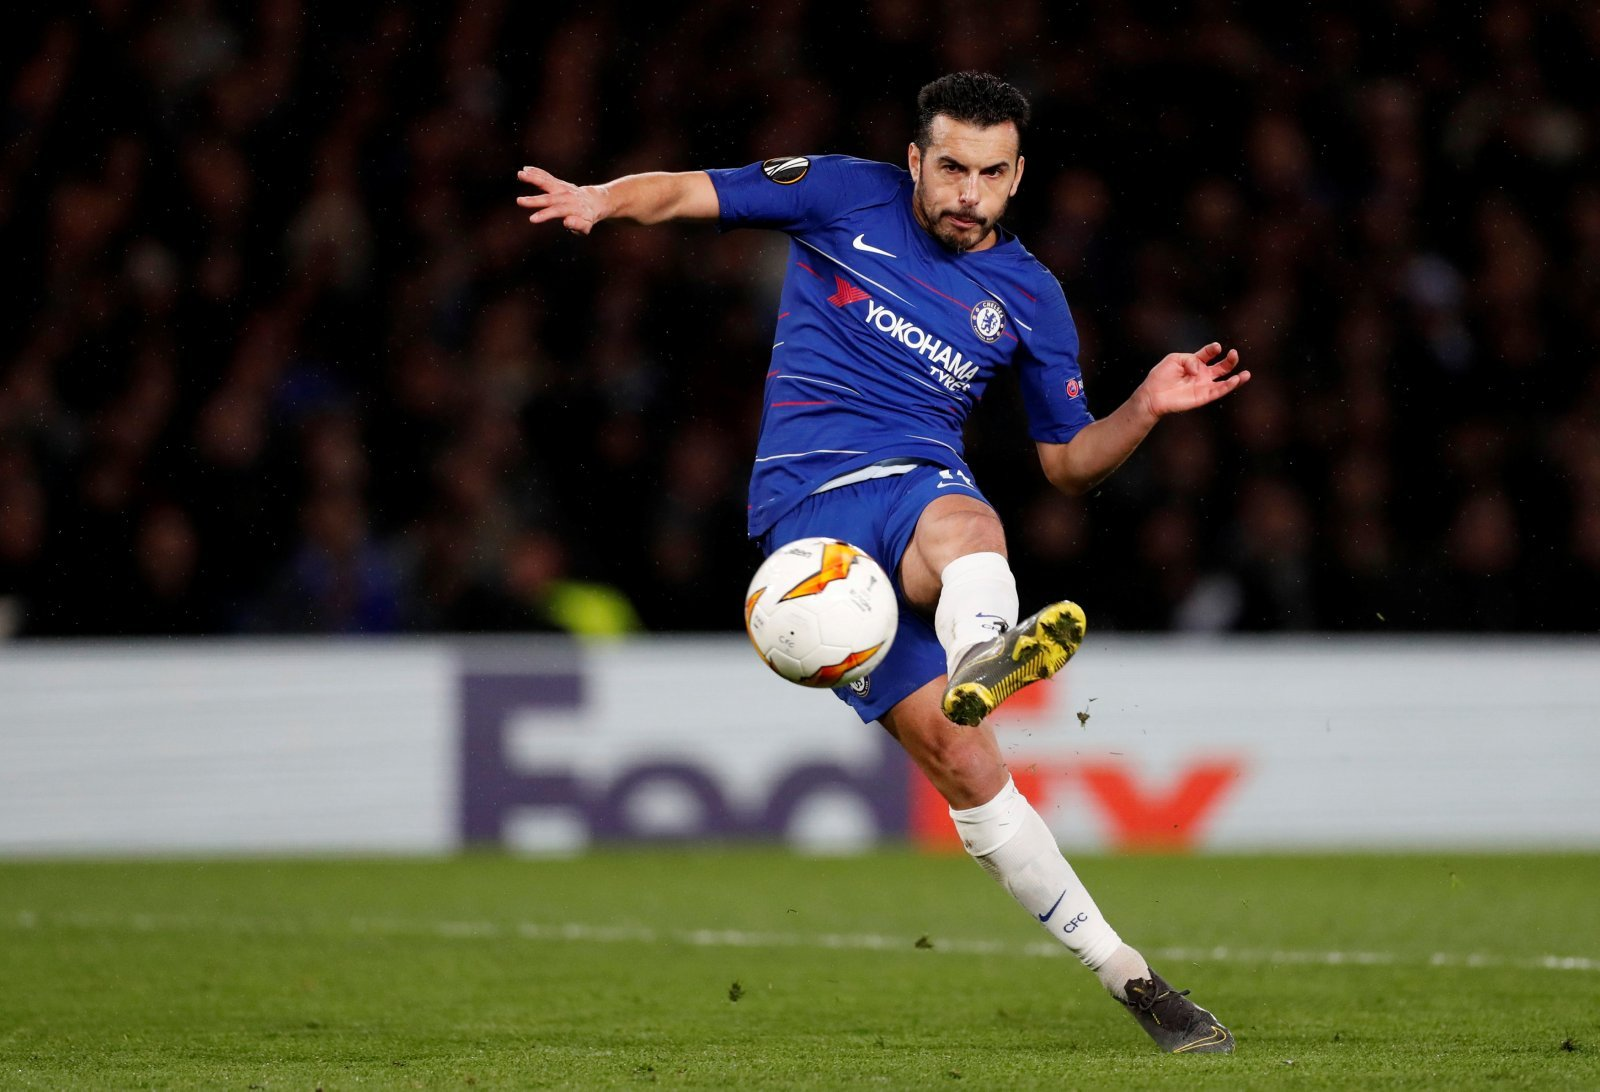 Chelsea risk jeopardising club's future if they rebuff offers for Pedro